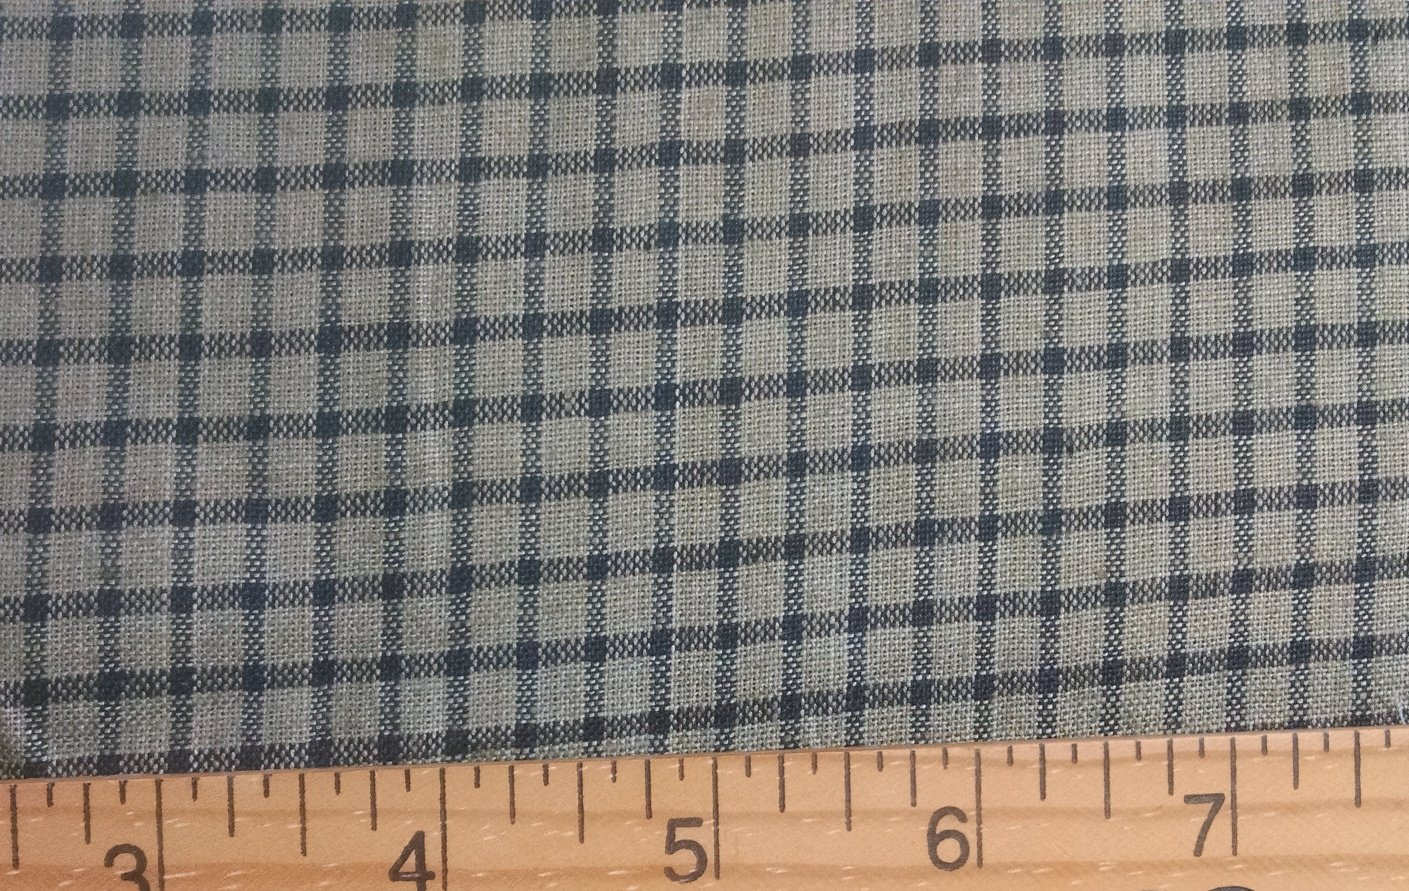 Fabric Cotton Homespun Green and Black Plaid 60 100% Cotton